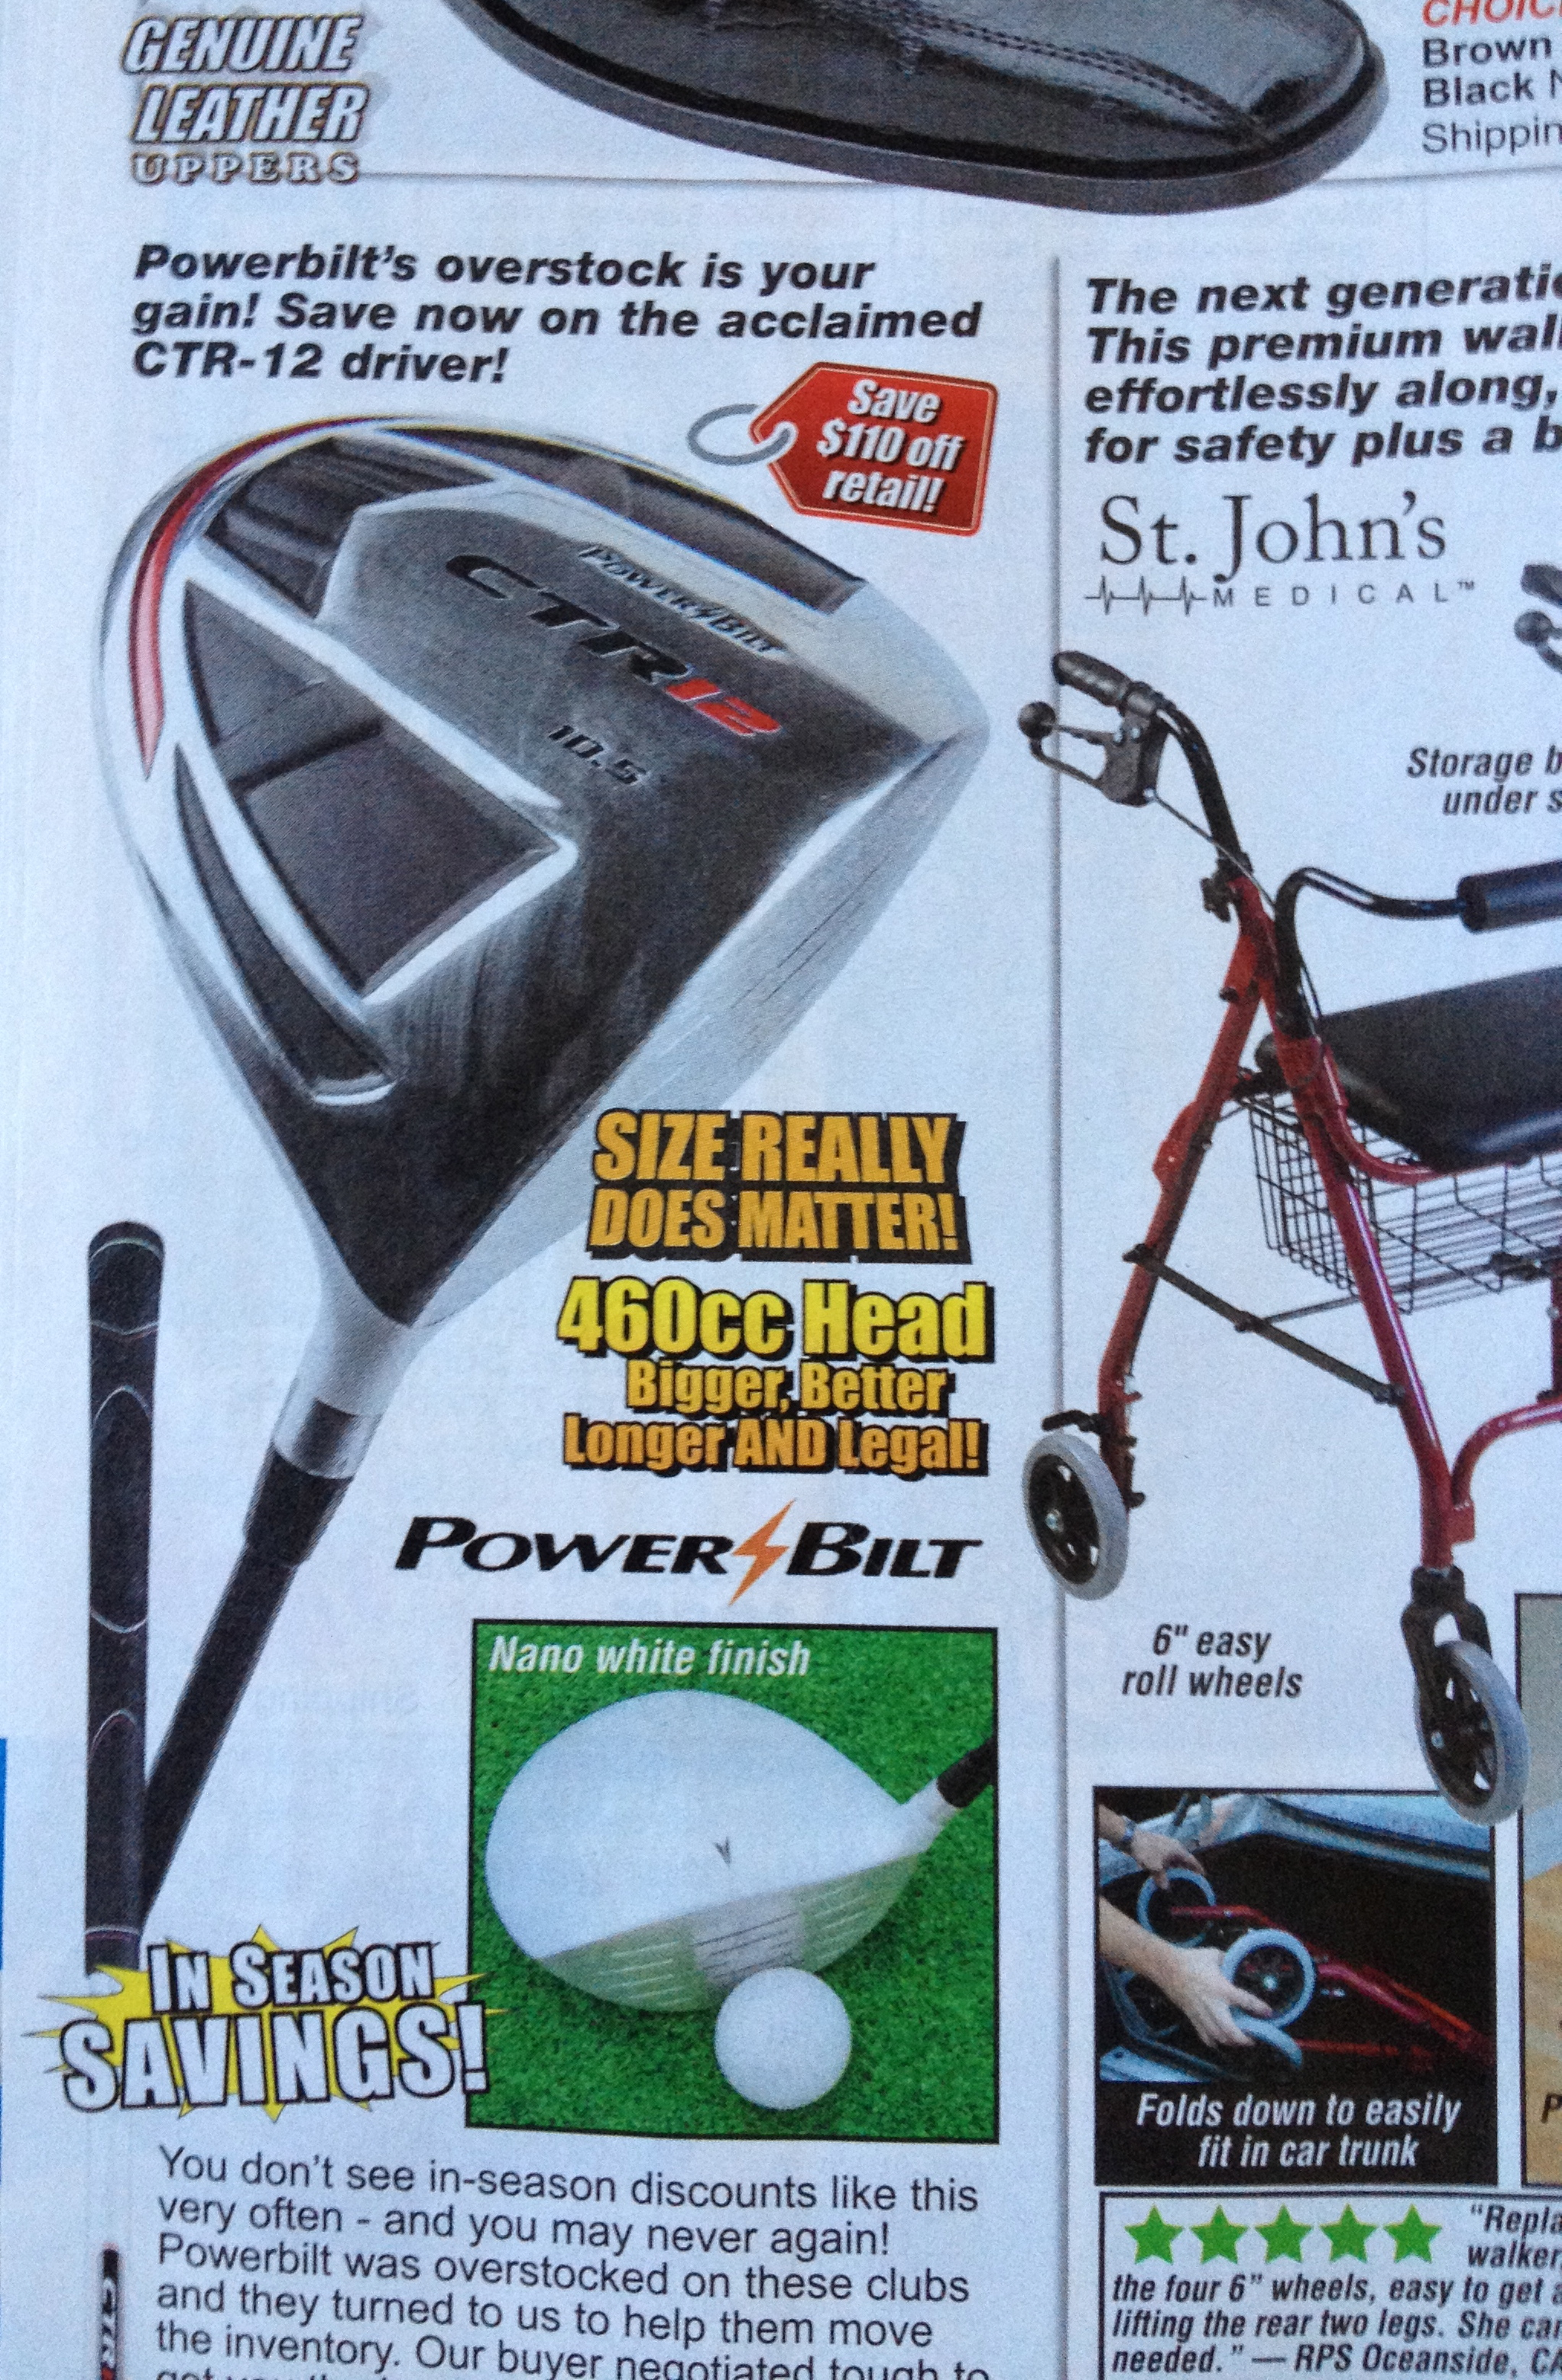 power bilt driver